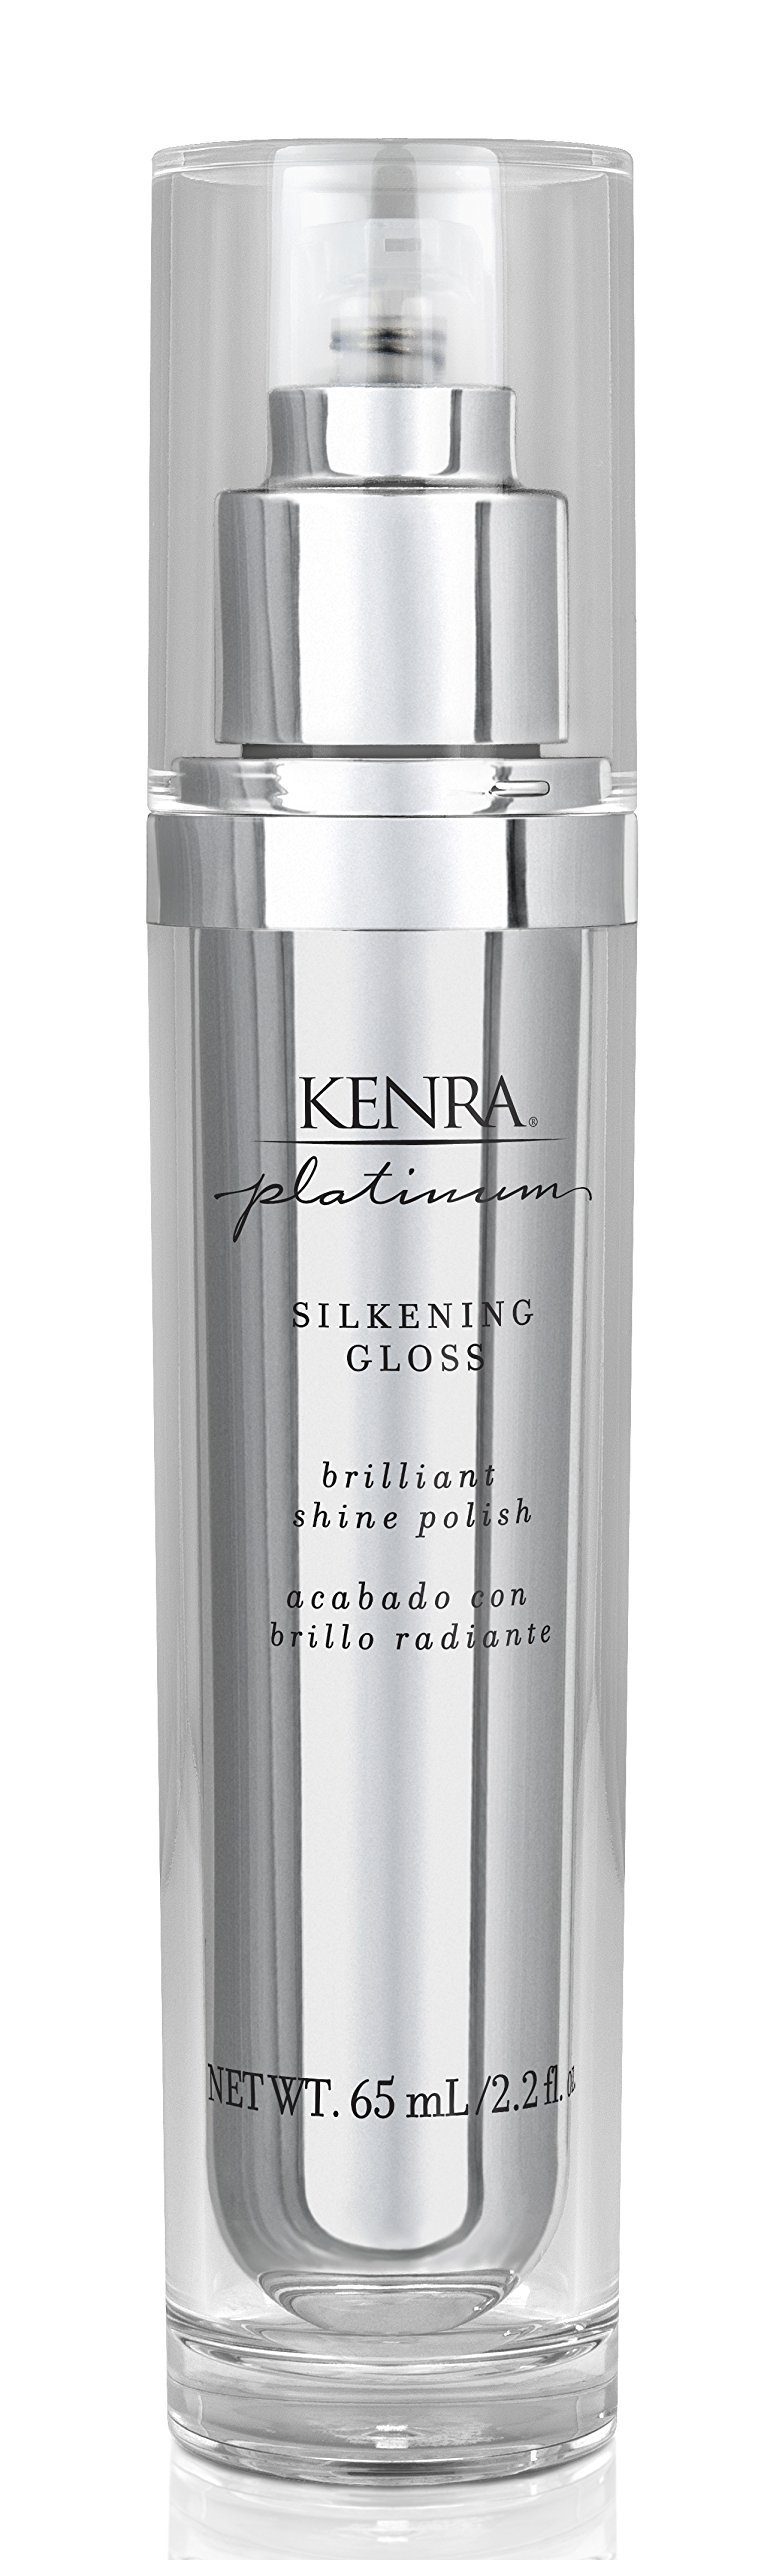 Kenra Platinum Silkening Gloss, 2.26-Fluid Ounce by Kenra